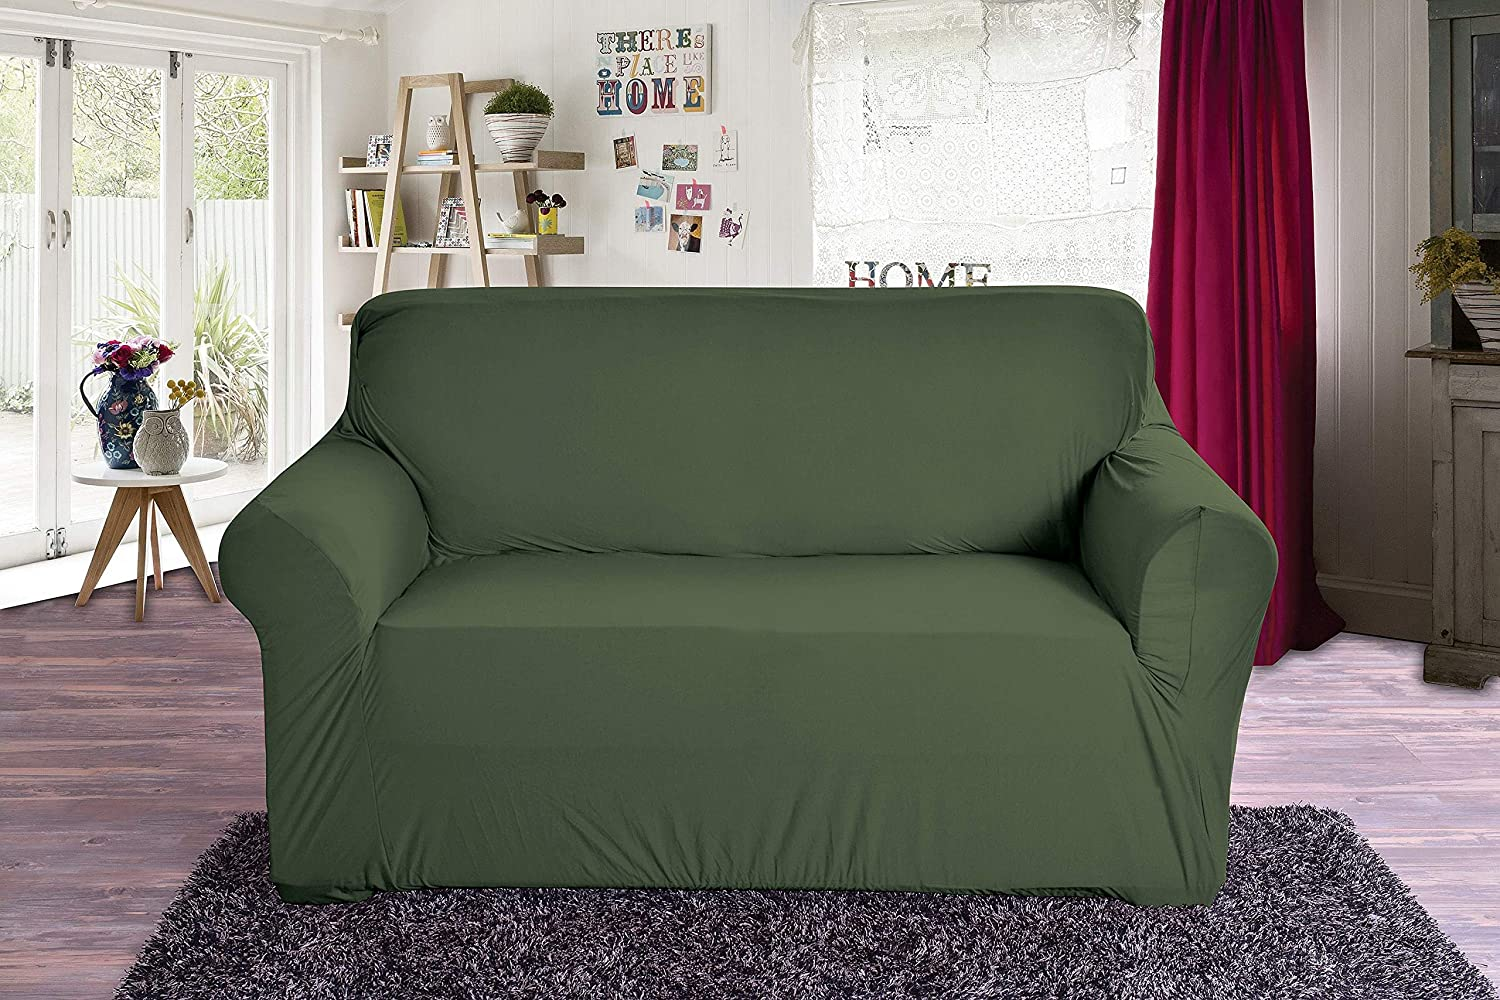 Elegant Comfort Jersey Luxury Featuring Super Soft Pet Dog Furniture Protector Fitted Couch Slipcover, Love Seat, Hunter Green